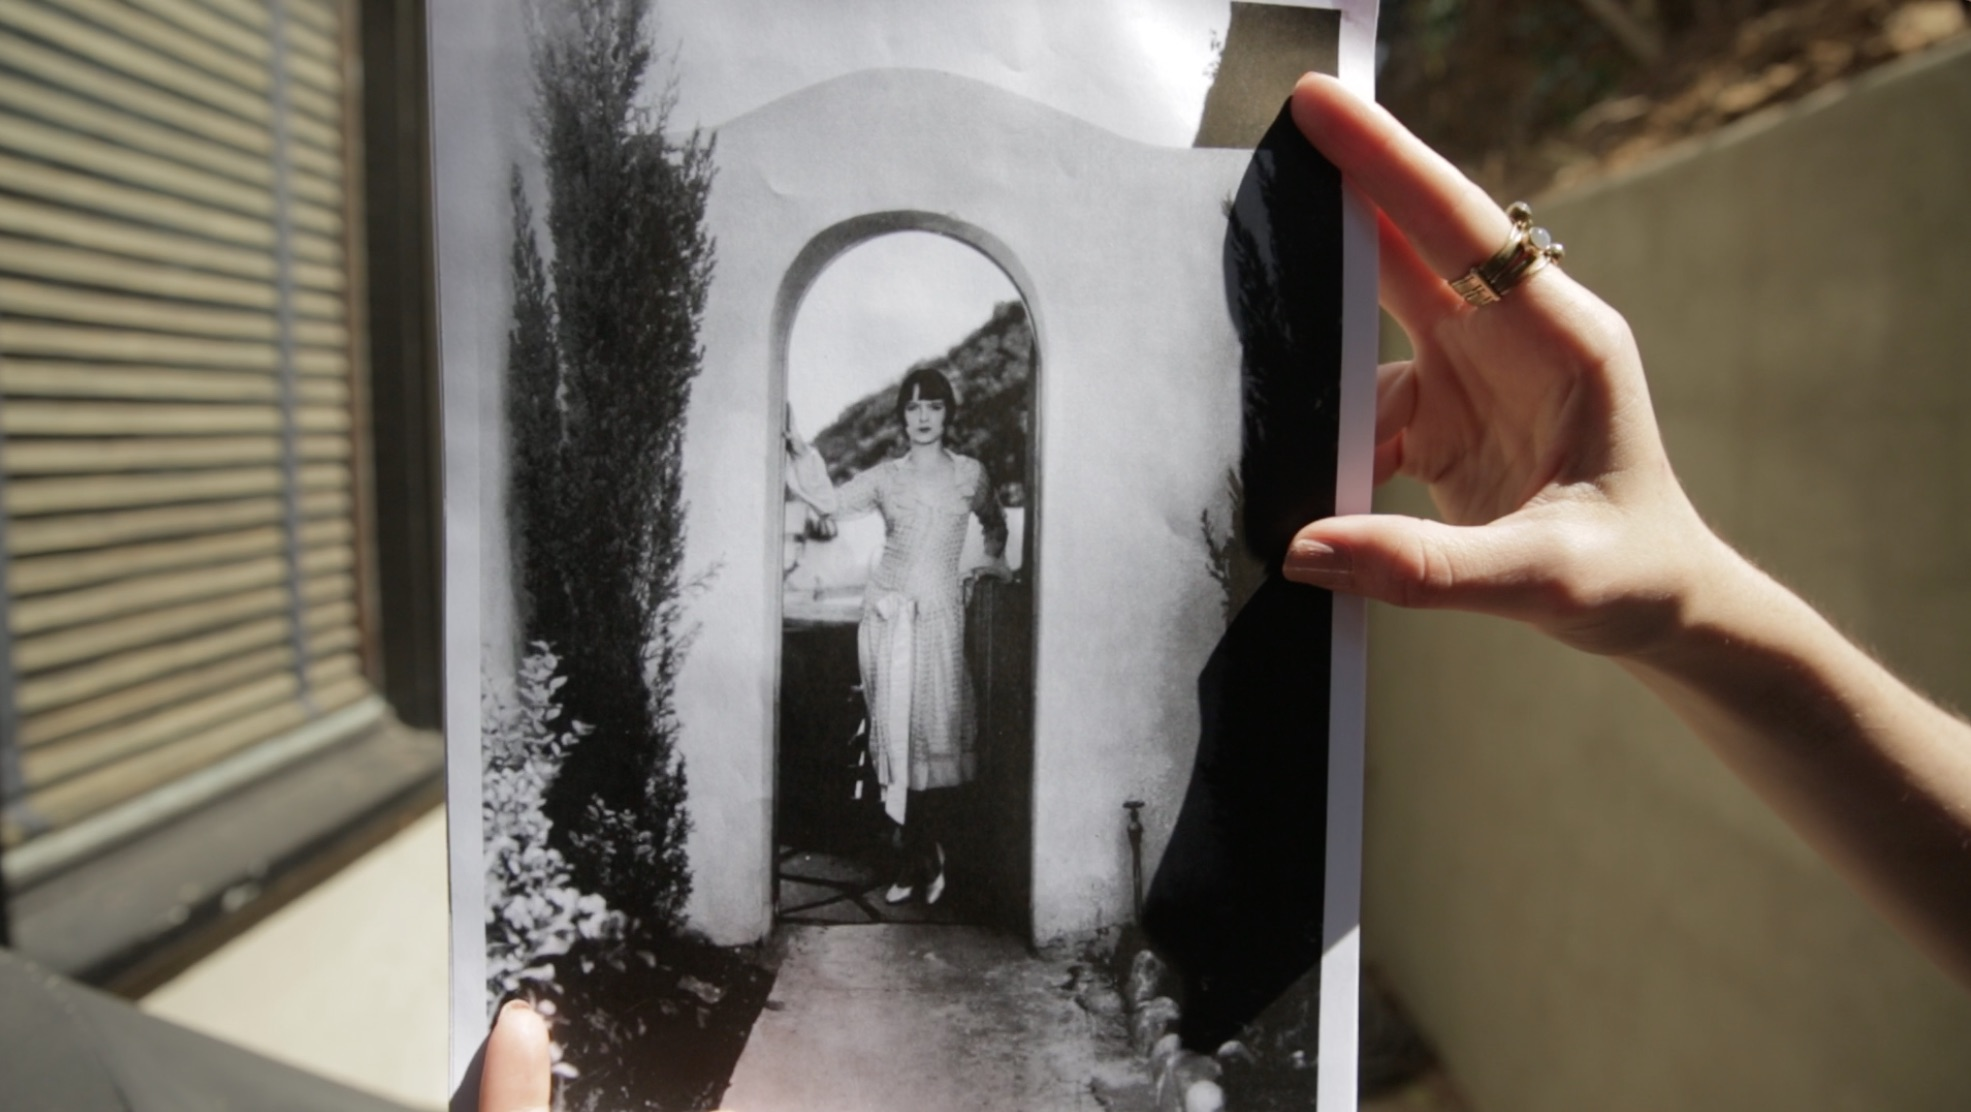 Then and Now: Louise posing in the archway of her home, one of the few places that hasn't been ravaged by time